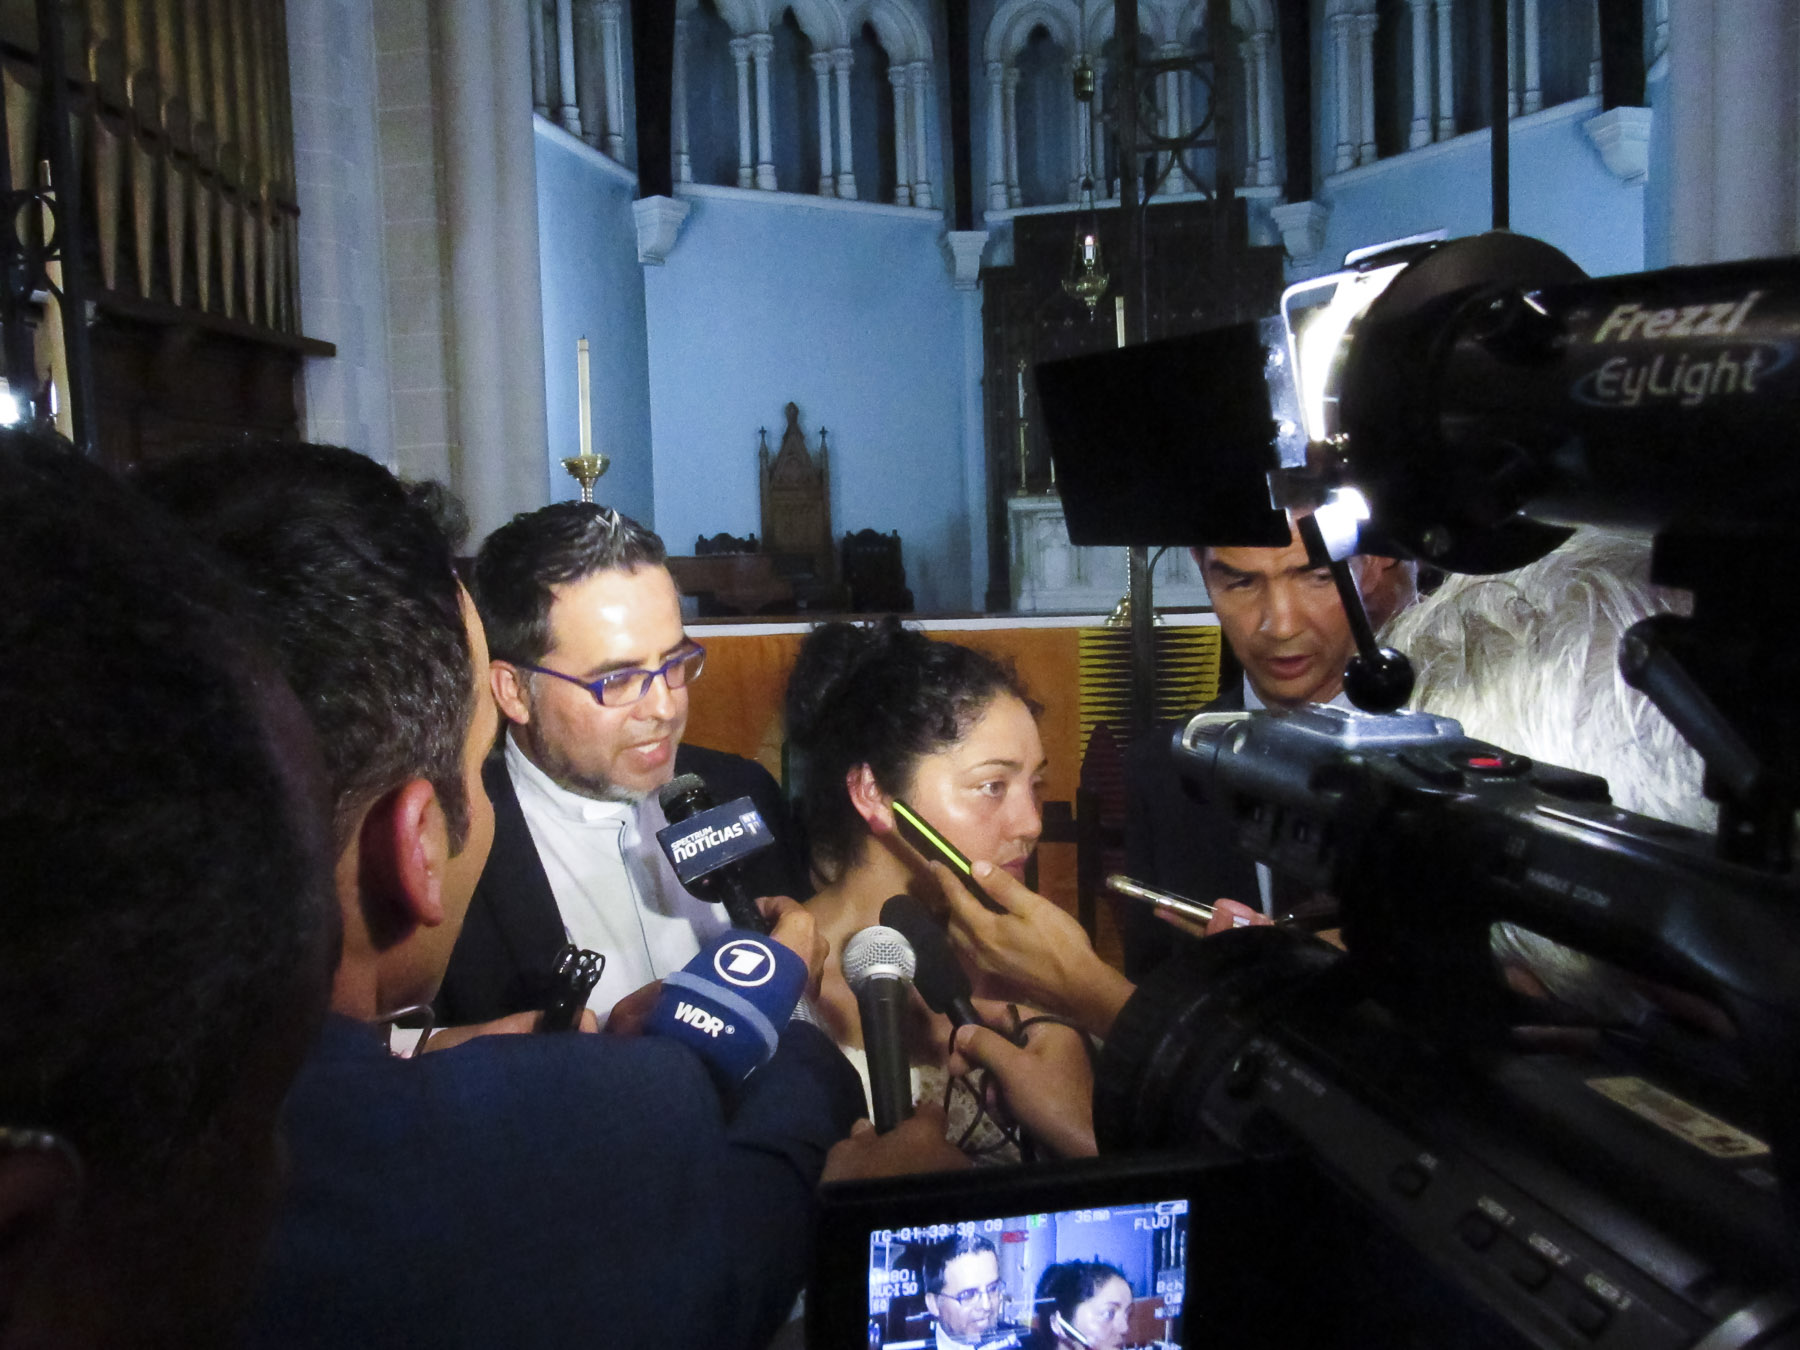 The New York Sanctuary Coalition works to protect the rights of undocumented immigrants across New York by providing legal counseling as well as offering sanctuary in throughout across the city. Head minister, Juan Carlos Ruiz, seeks to educate the media about the Coalition's advocacy in a press conference. Holyrood Episcopal Church in Washington Heights, New York – August 17, 2017.